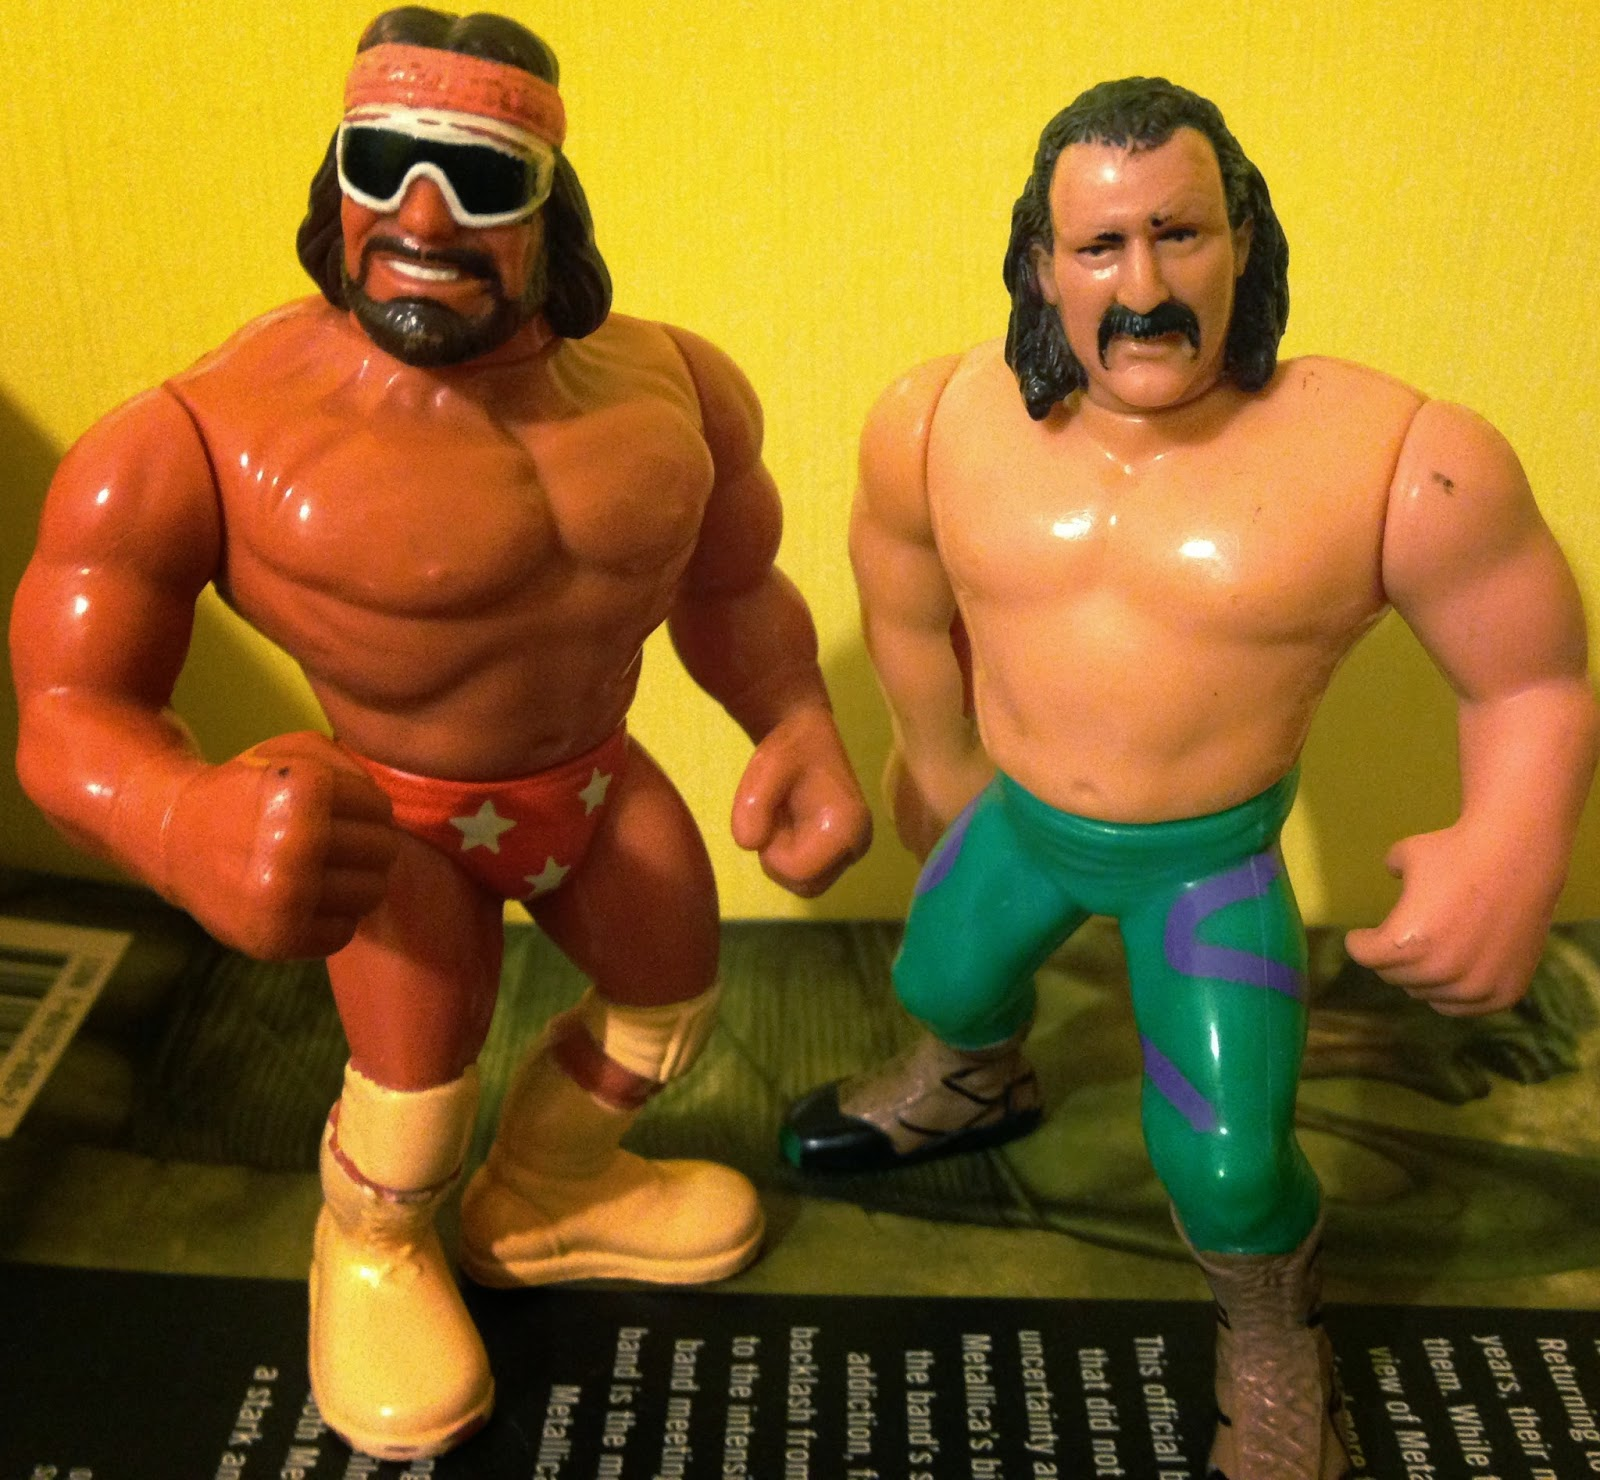 WWF / WWE - Hasbro Wrestling Figures - Macho Man Randy Savage vs.Jake 'The Snake' Roberts - This Tuesday in Texas